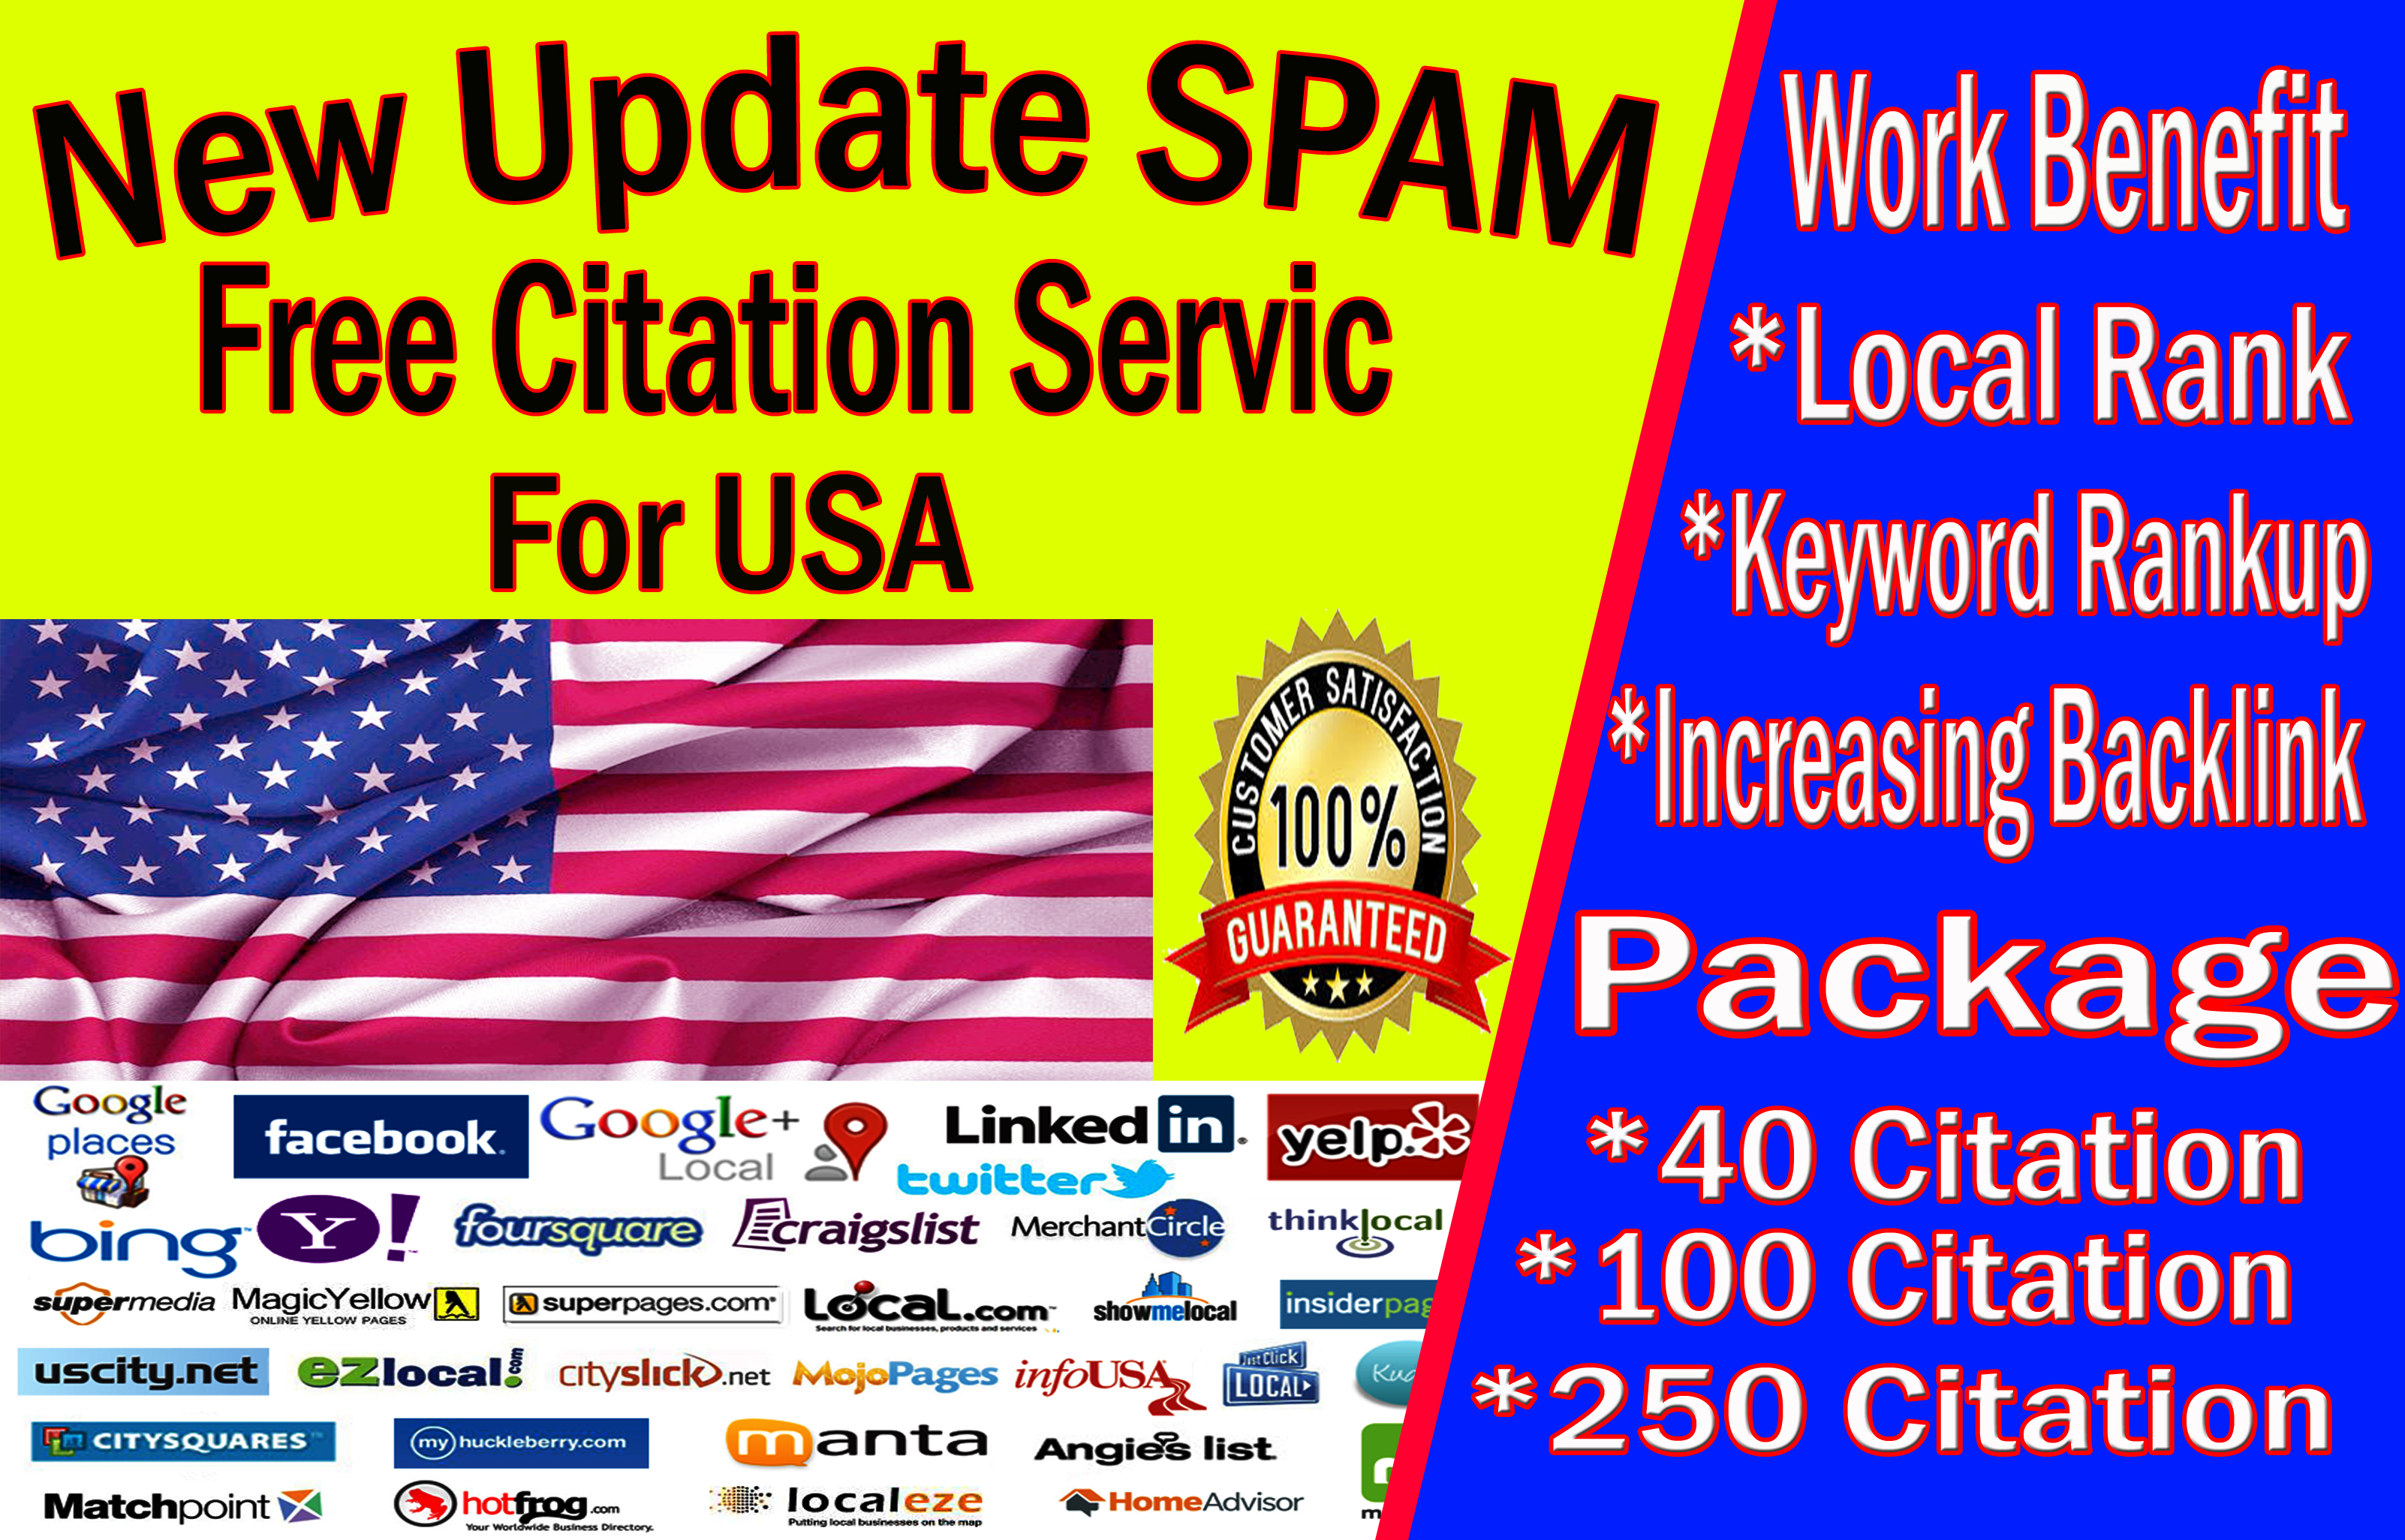 40 Low spam score local seo citation for USA